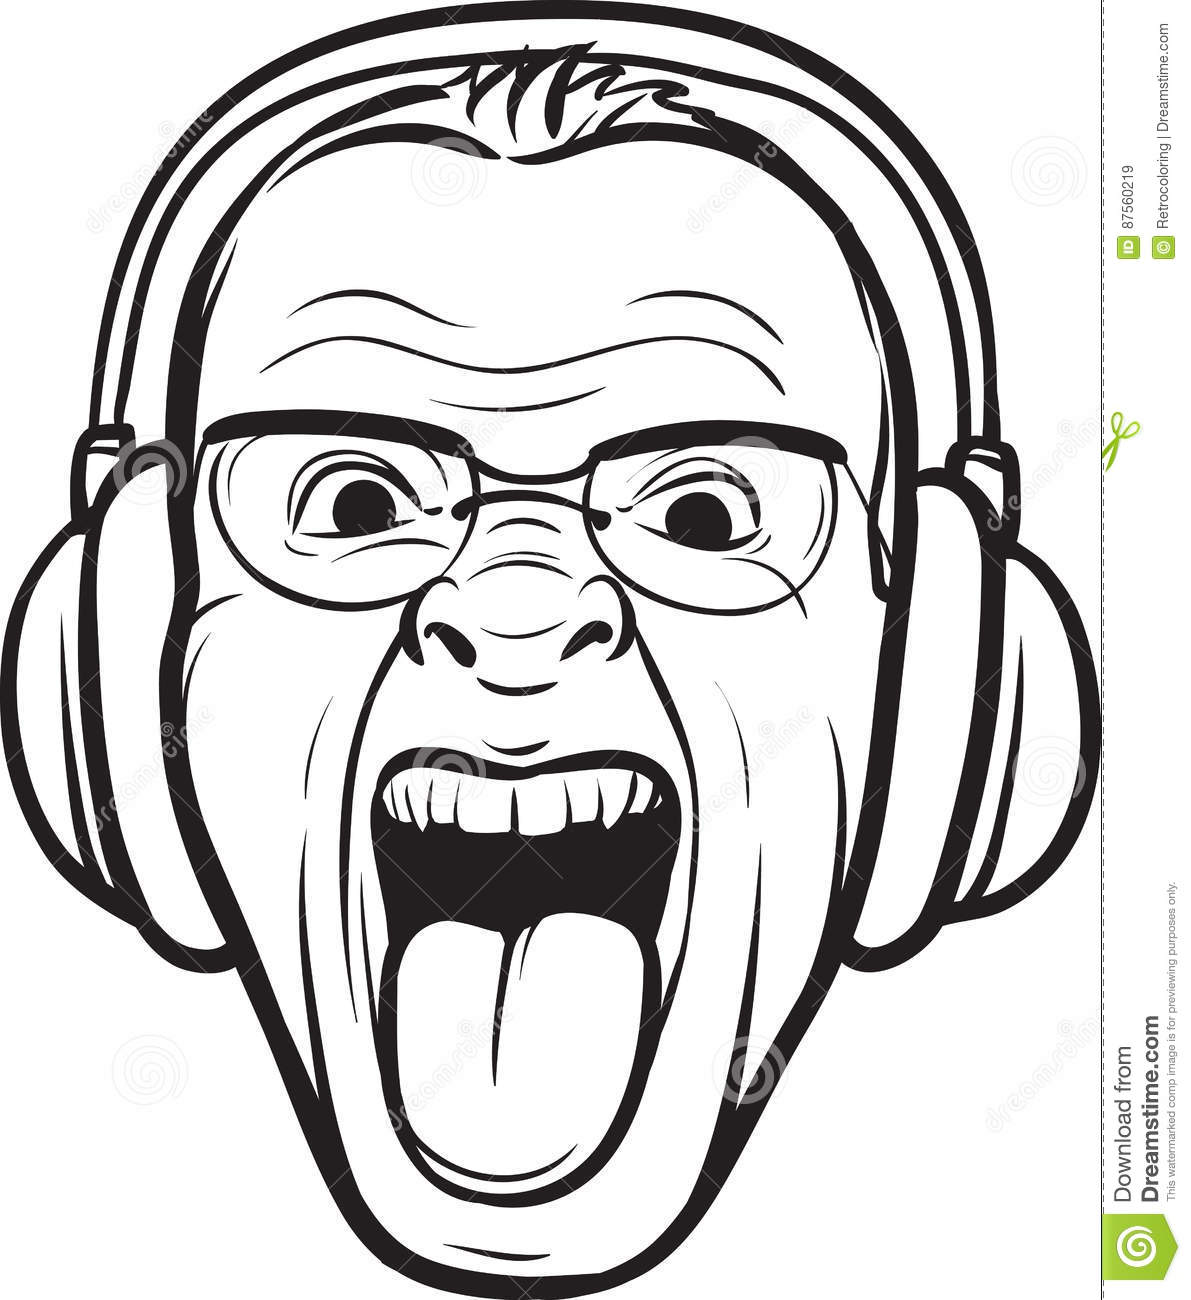 Headphones Drawing Sketch Coloring Page